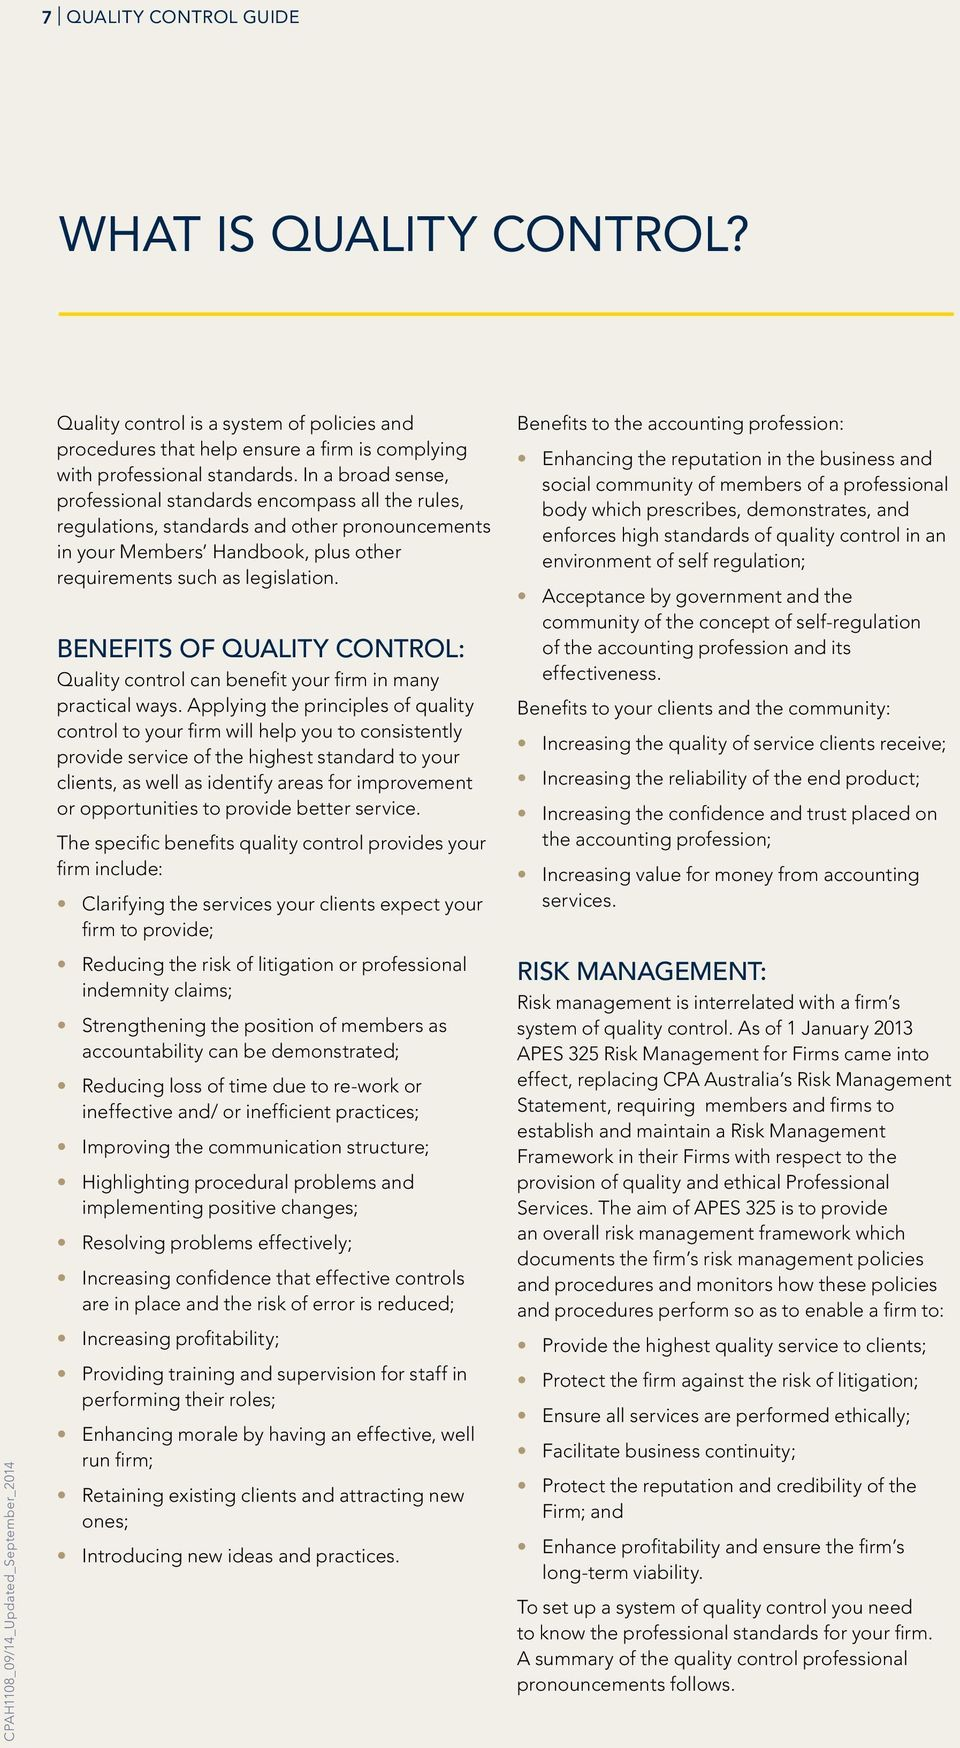 BENEFITS OF QUALITY CONTROL: Quality control can benefit your firm in many practical ways.